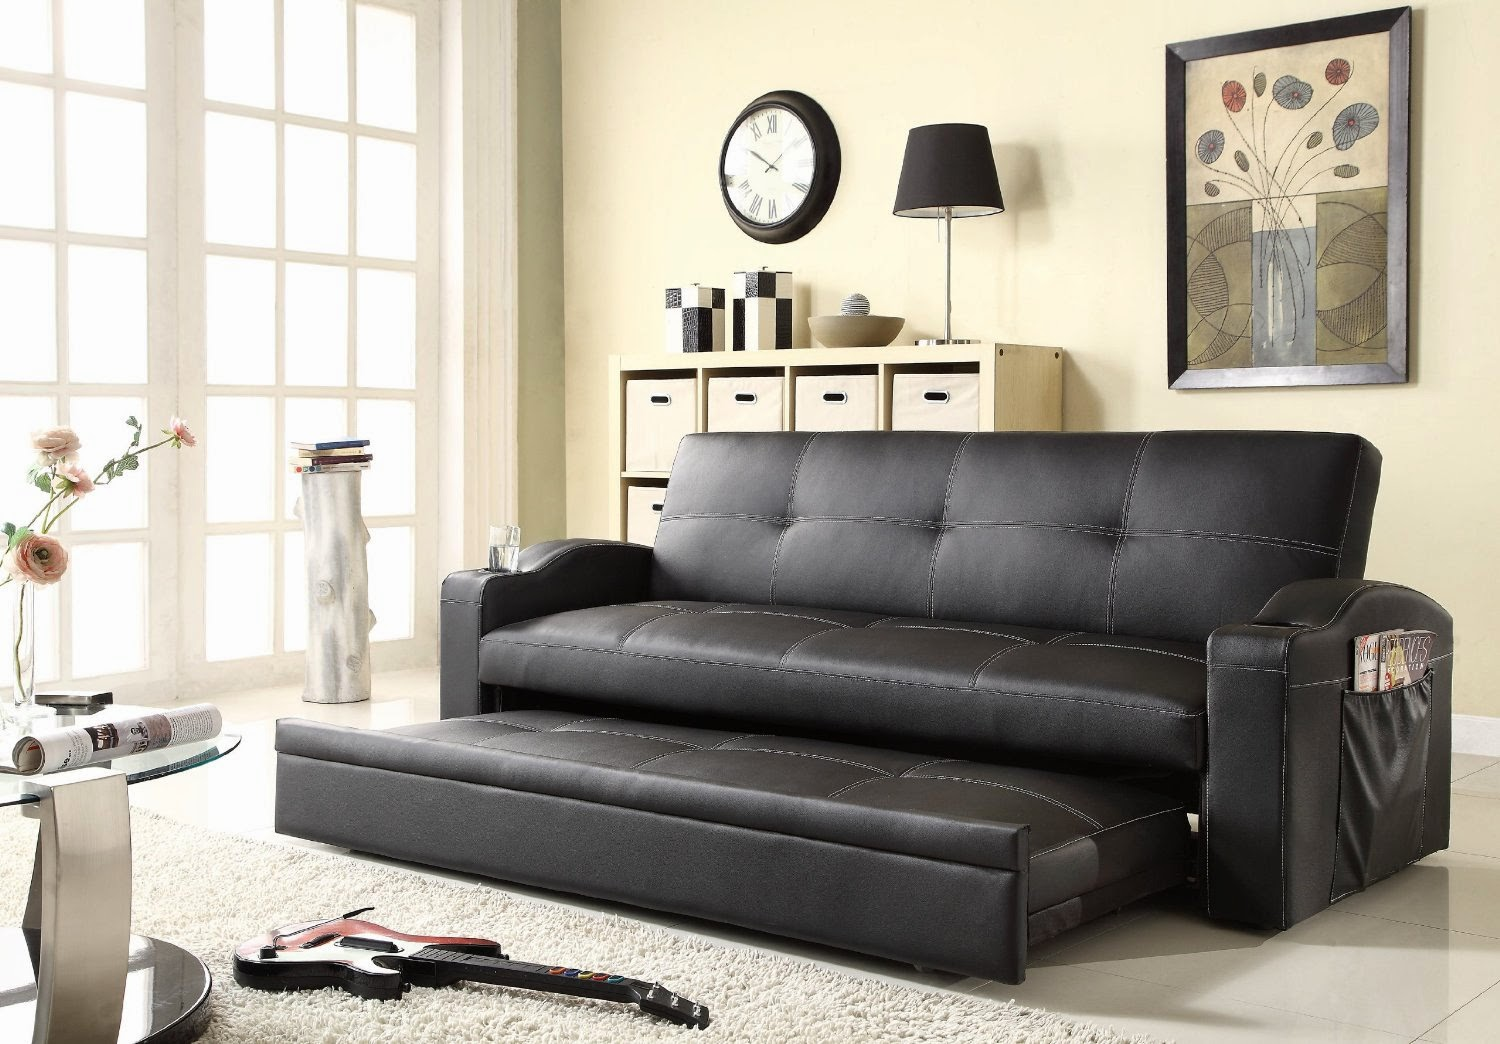 Best homelegance 4803blk sofa bed review best homelegance for Best sofa bed ever